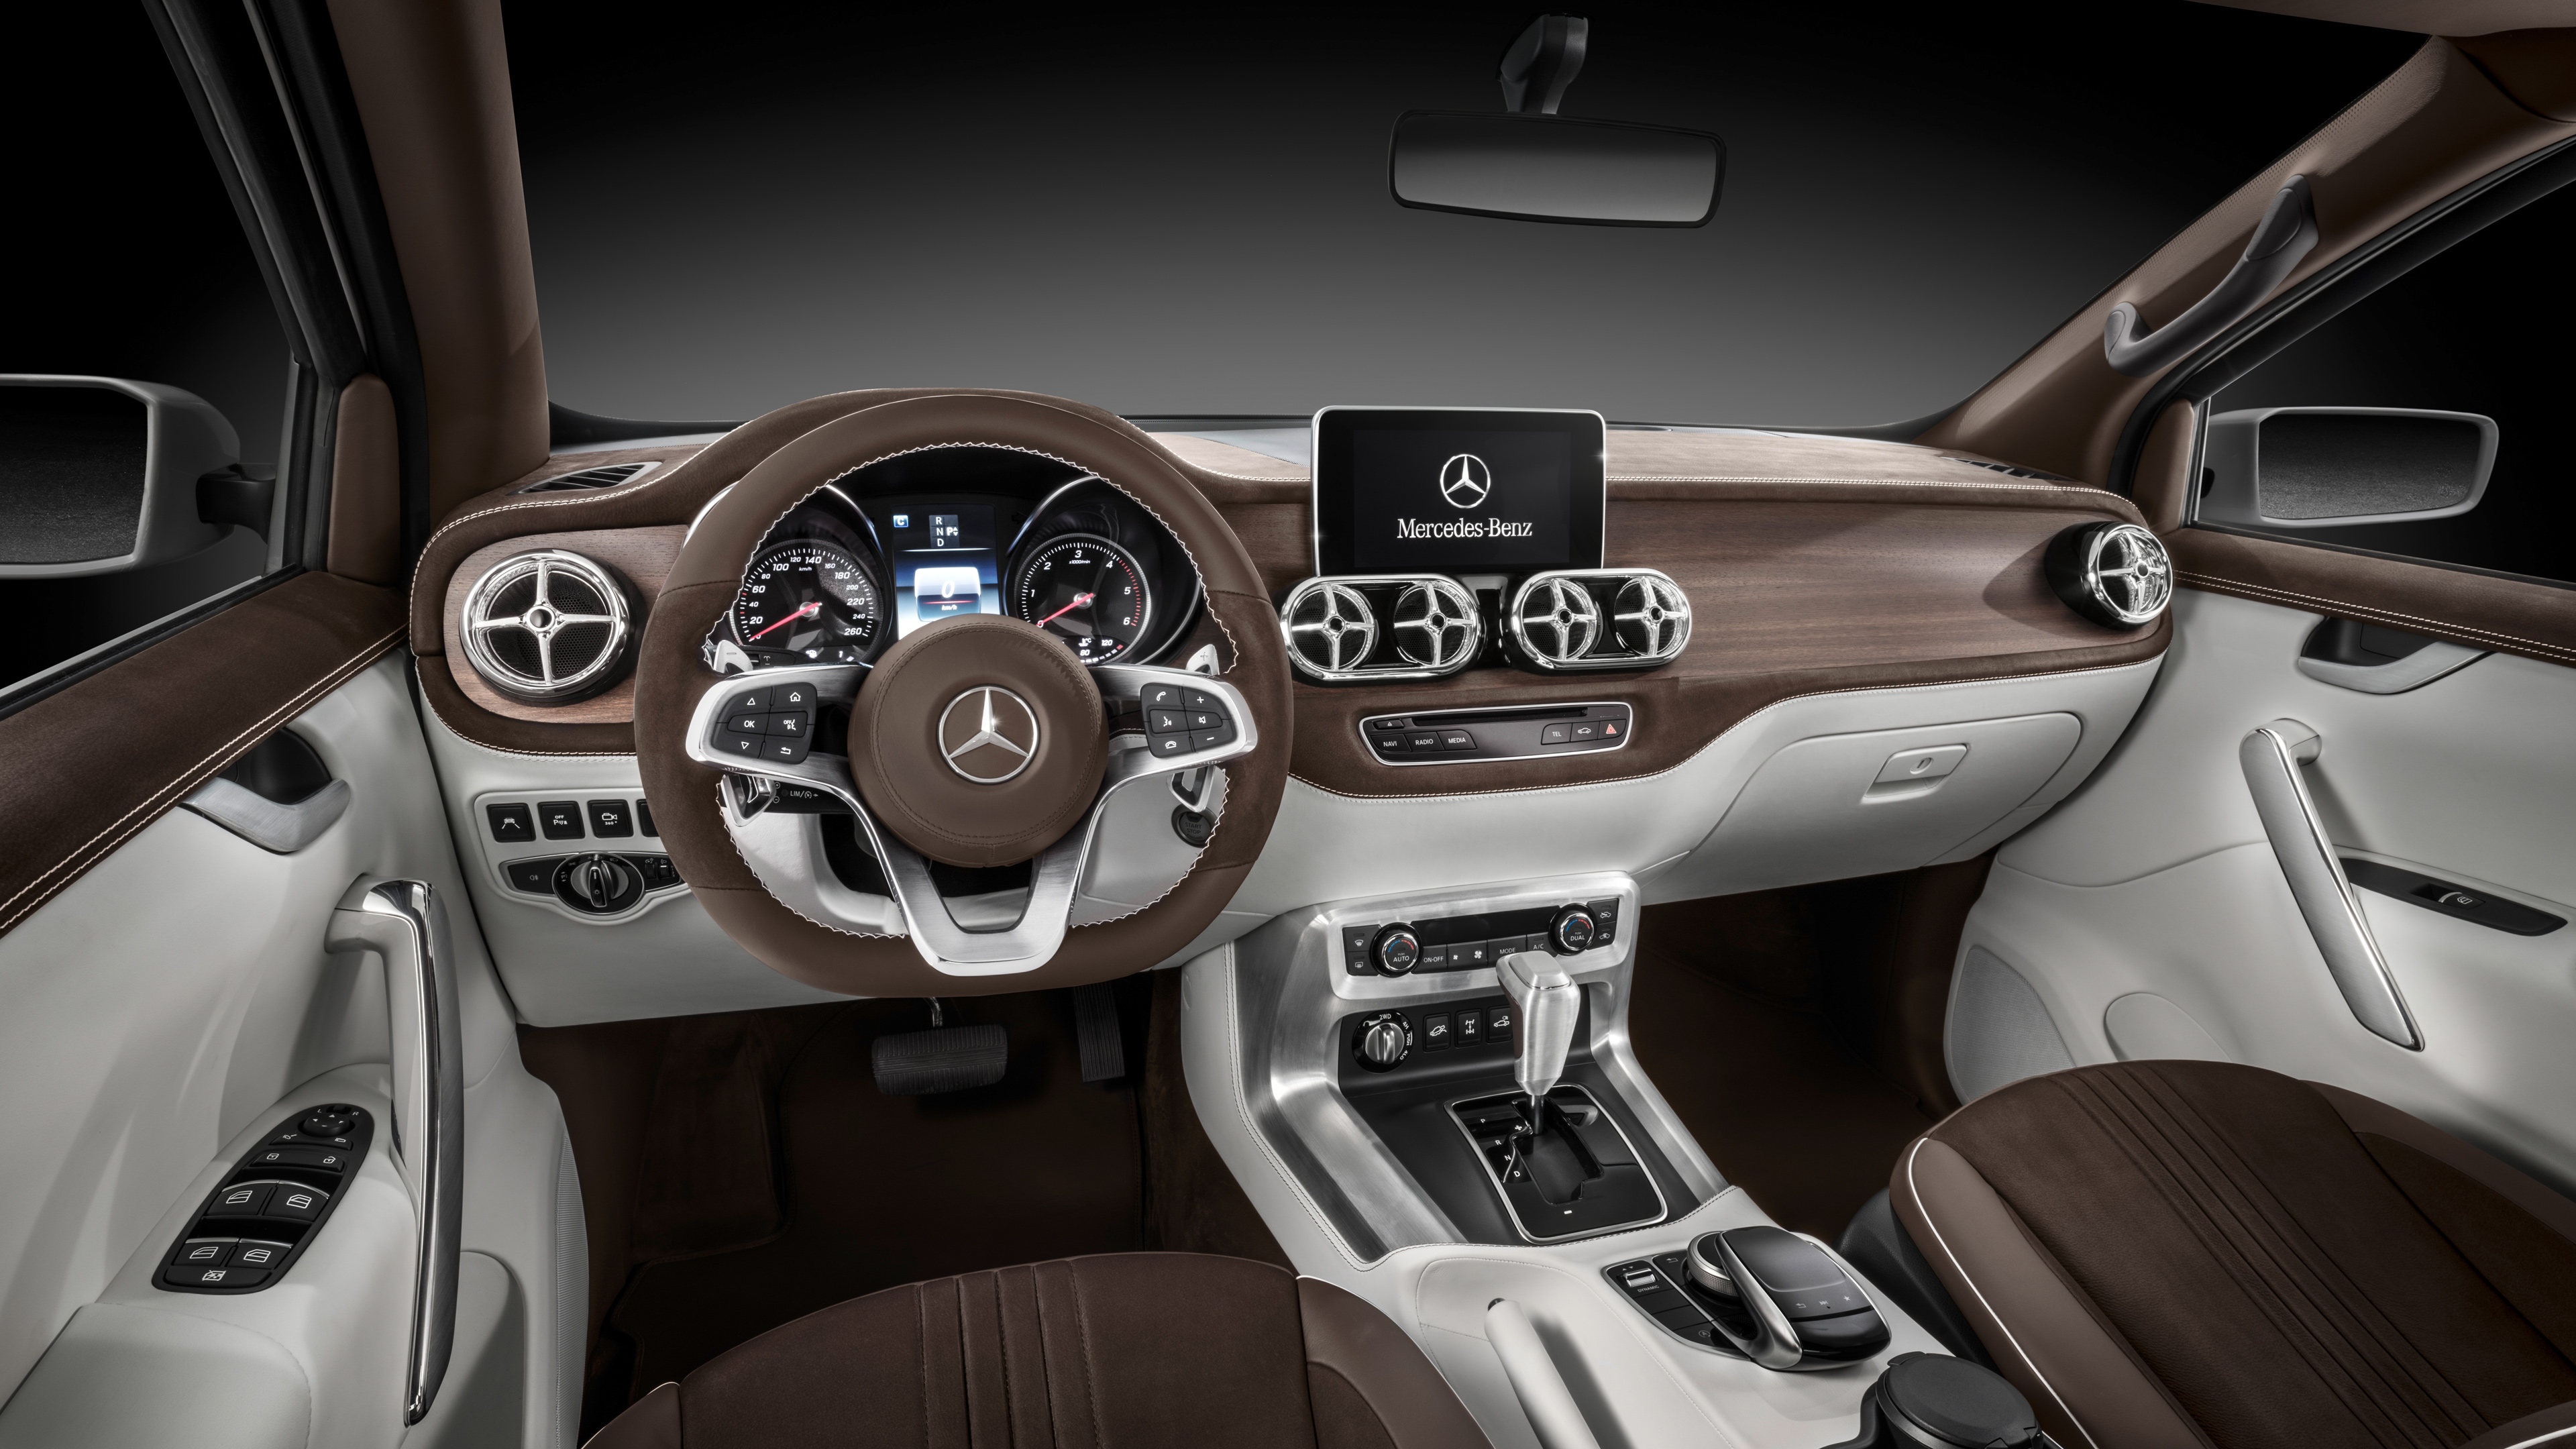 2017 Mercedes Benz X Class Pickup Truck Interior Wallpaper Hd Car Wallpapers Id 7102